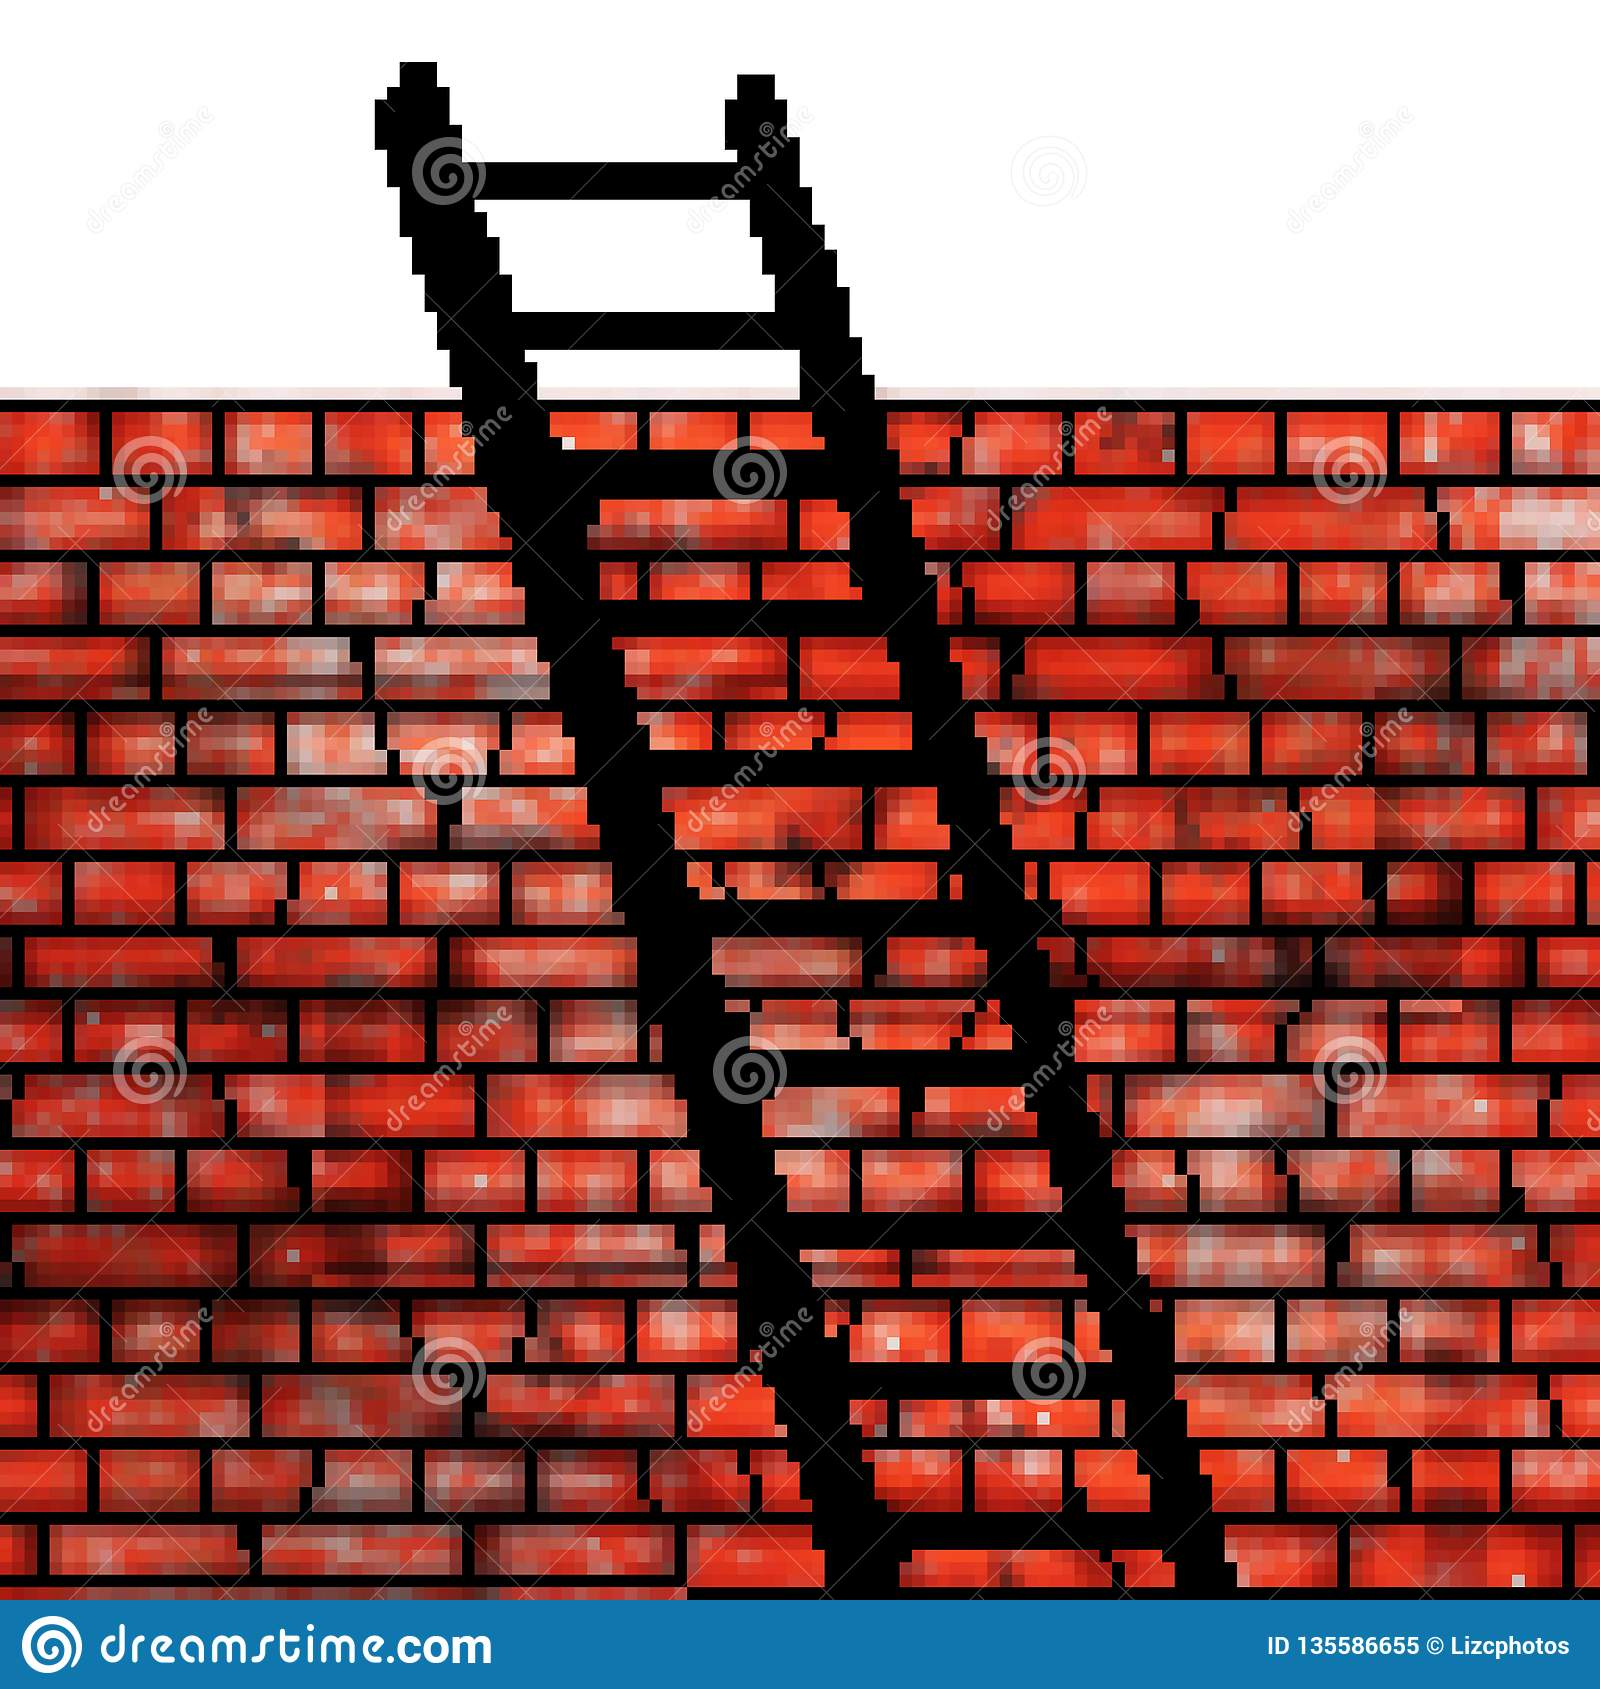 Pixel 8 bit drawn brick wall with a ladder leaning on it